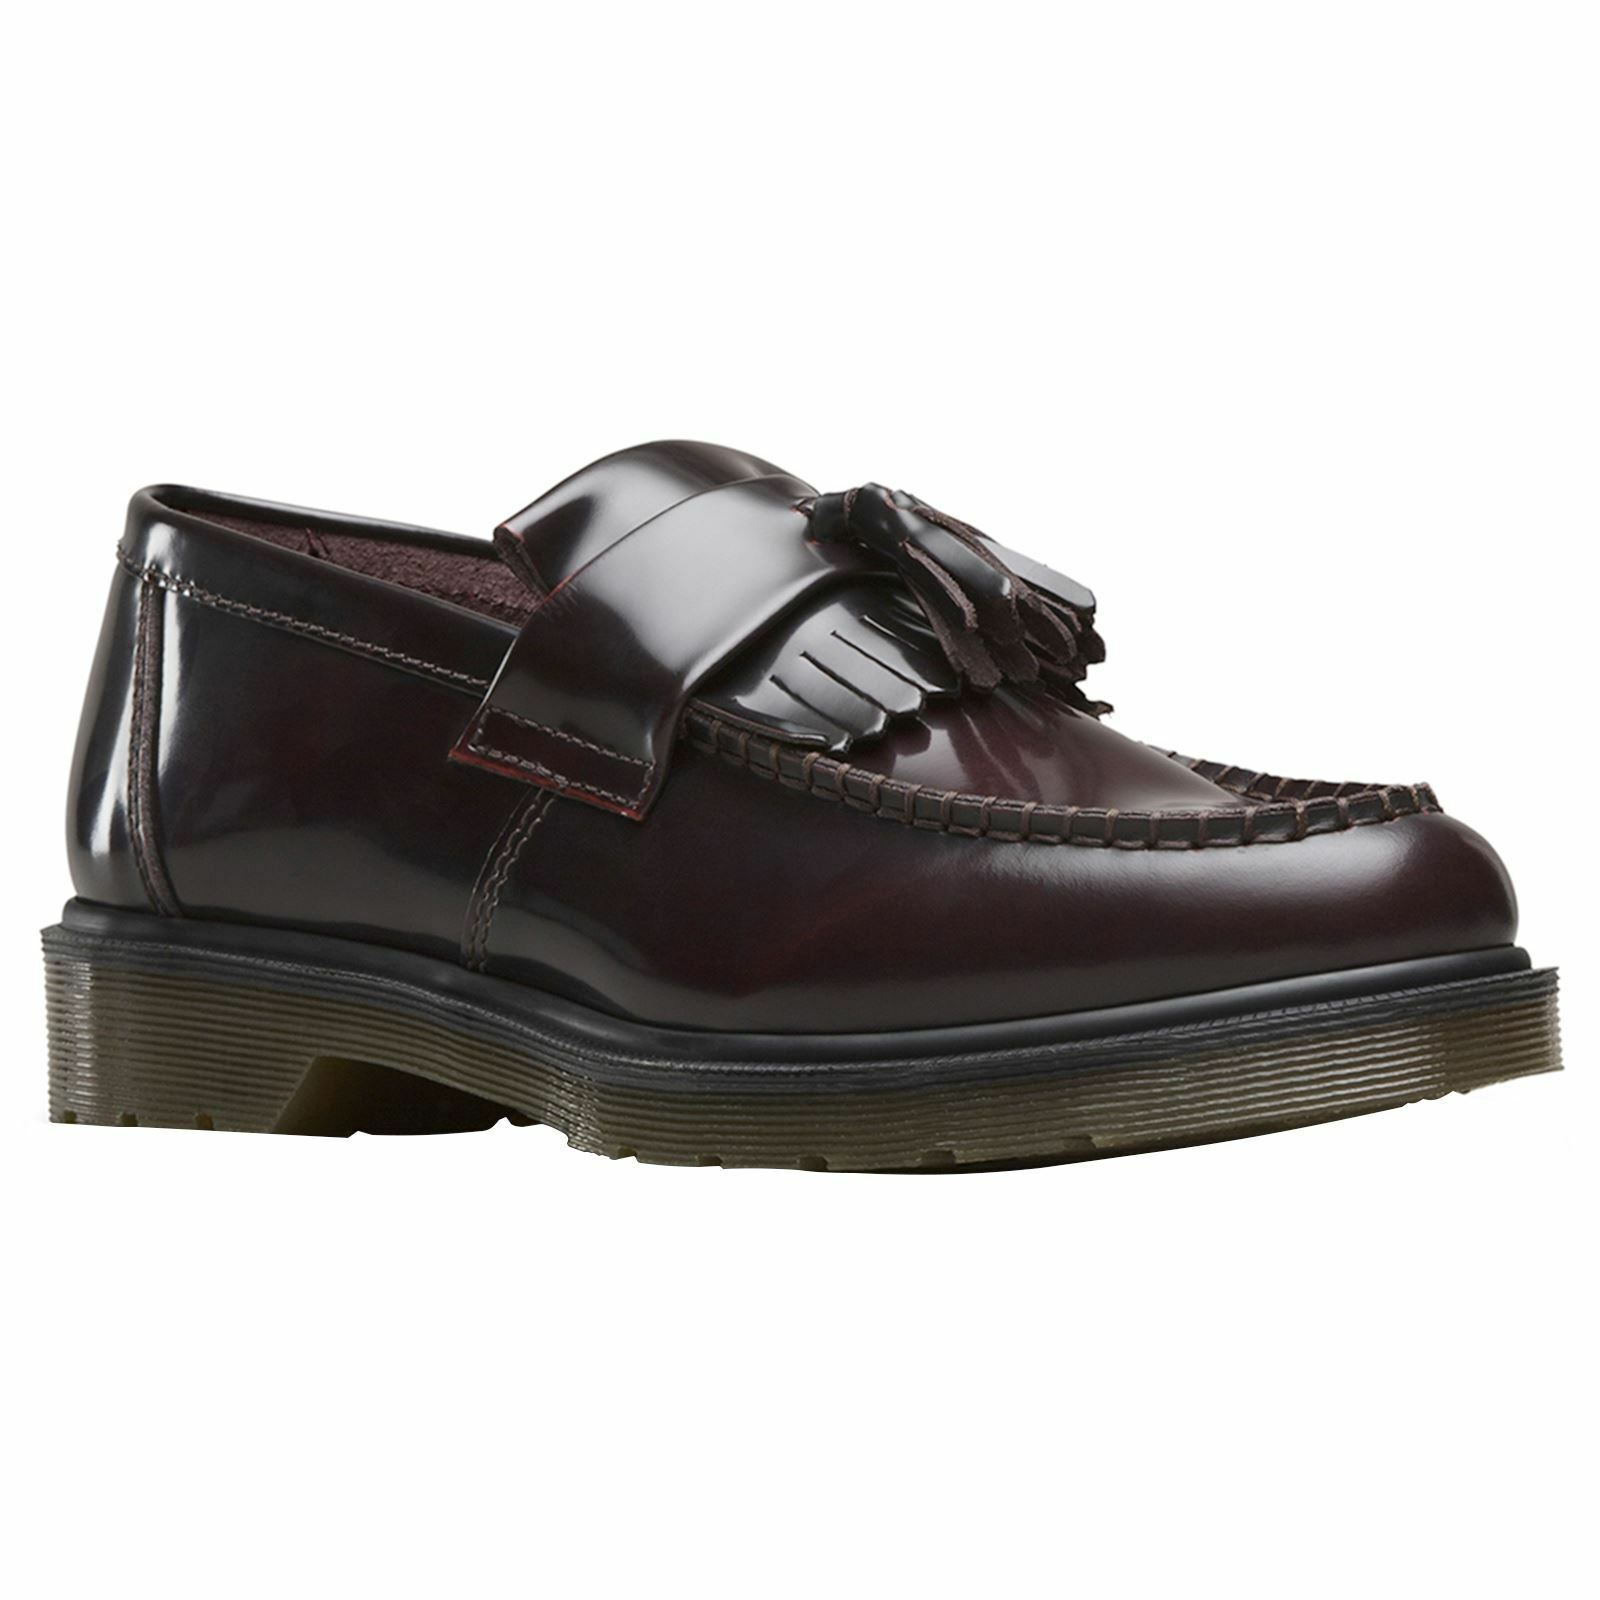 Dr.Martens Adrian Cherry Red Mens Leather Loafers Tassel Slip-on shoes